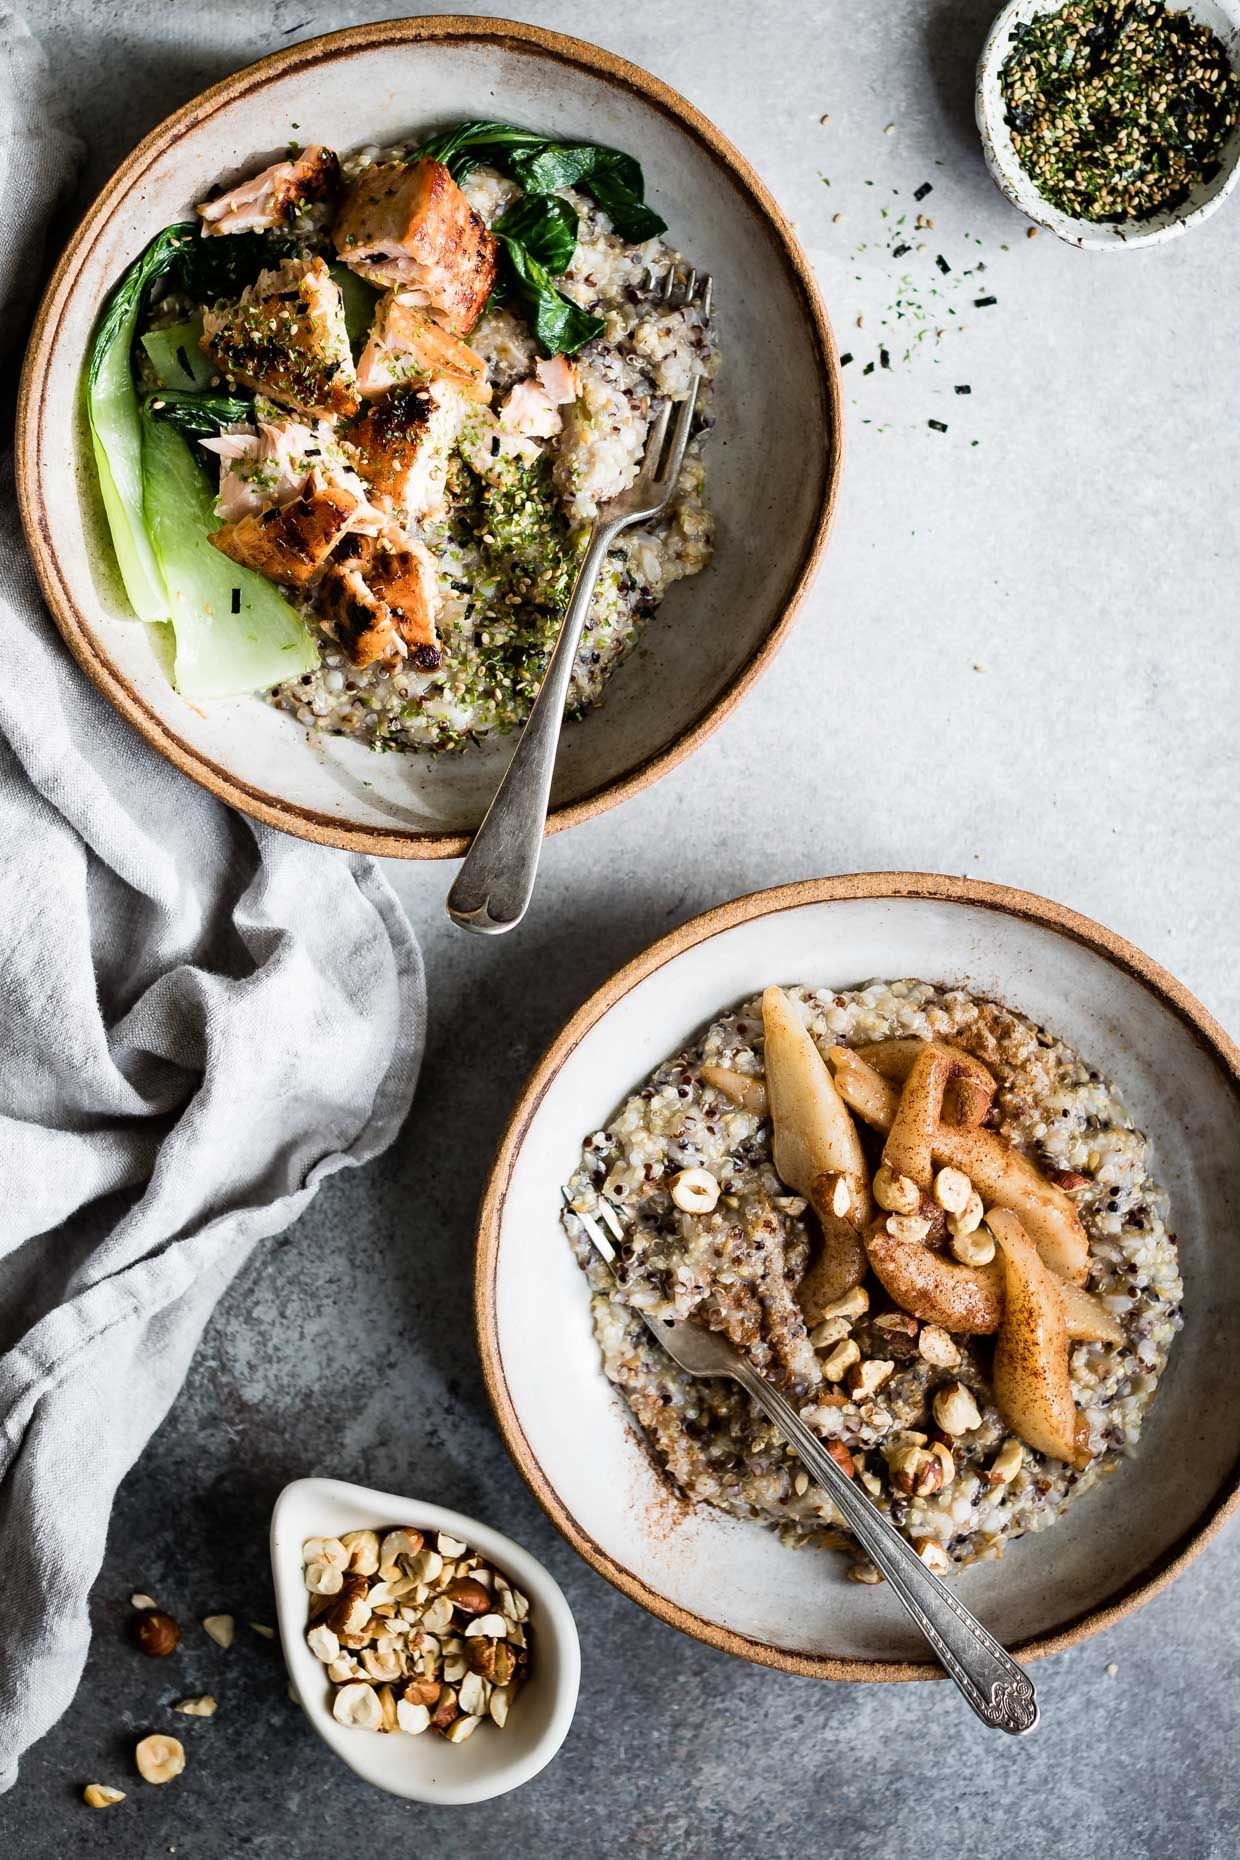 7 Sweet, Savory, And Nutrient-Rich Oatmeal Bowls